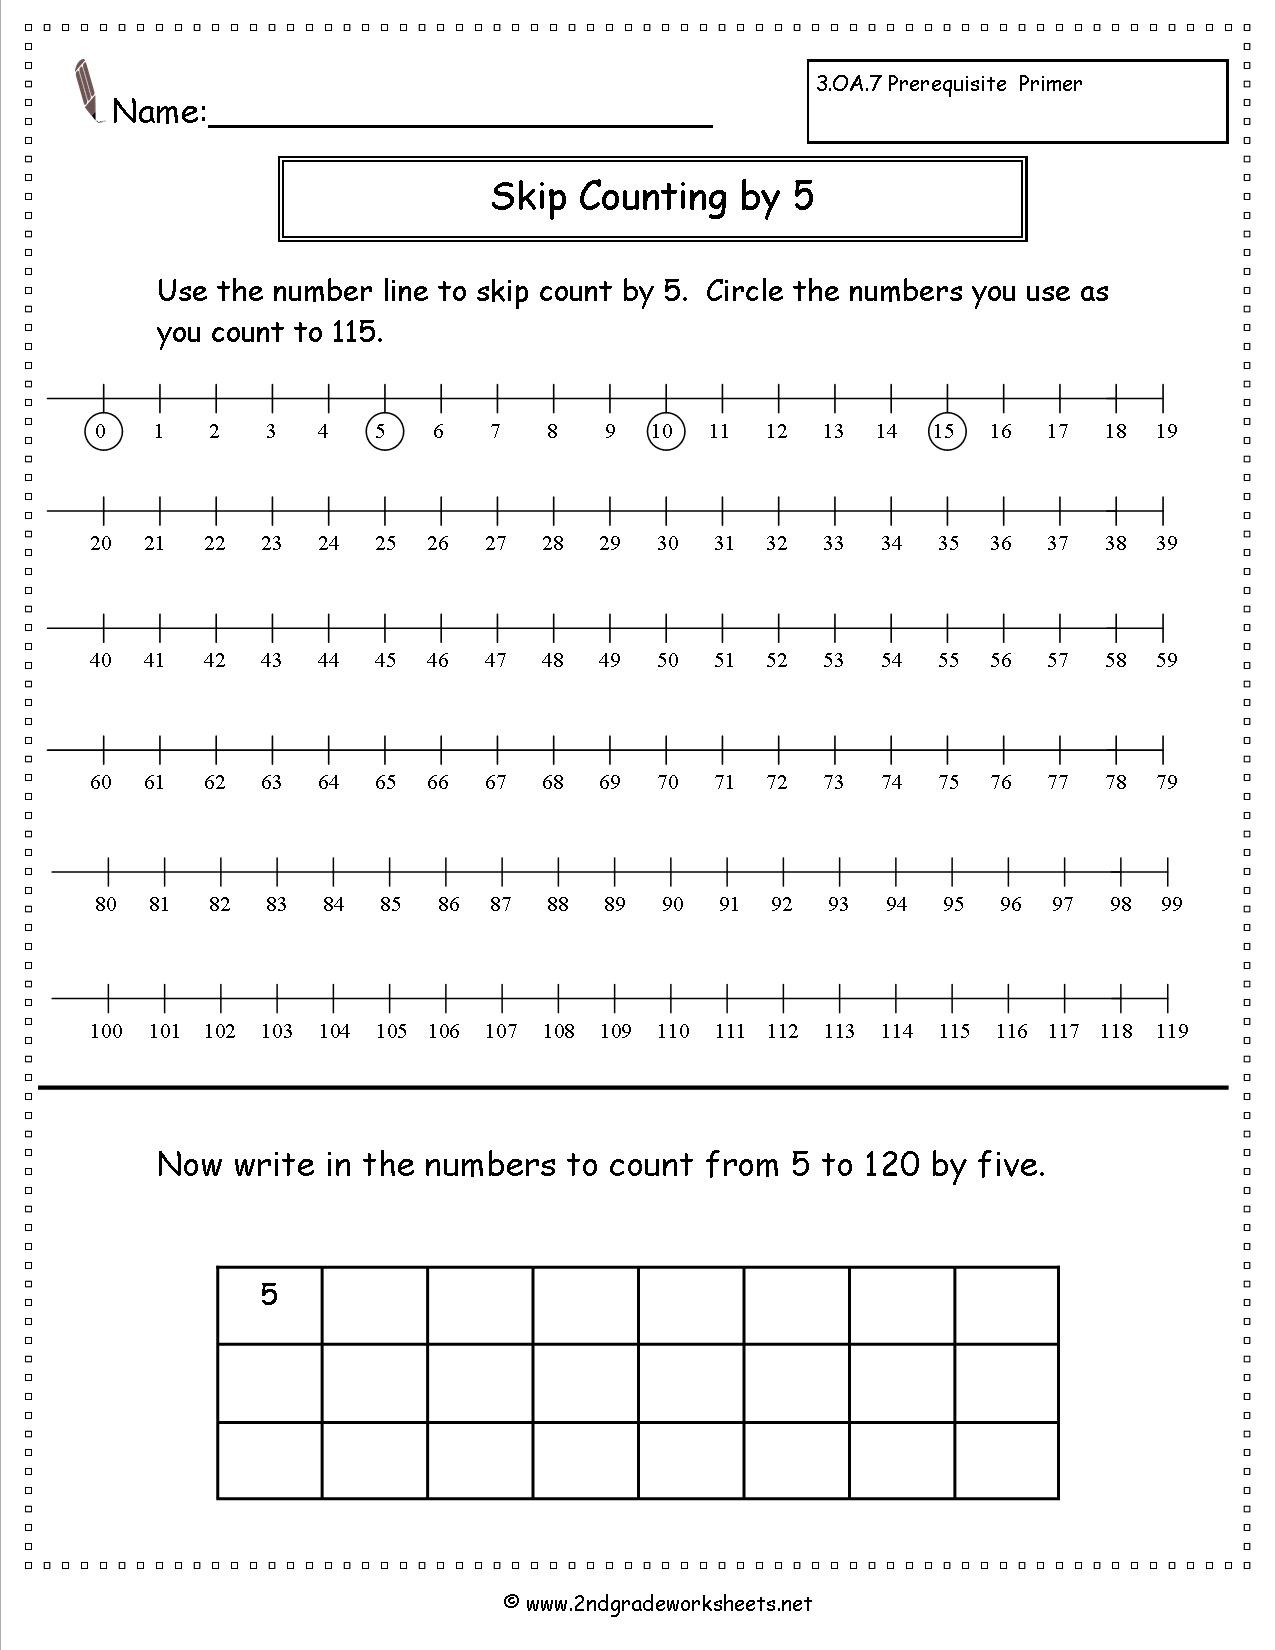 Skip Counting Worksheets First Grade Free Skip Counting Worksheets by